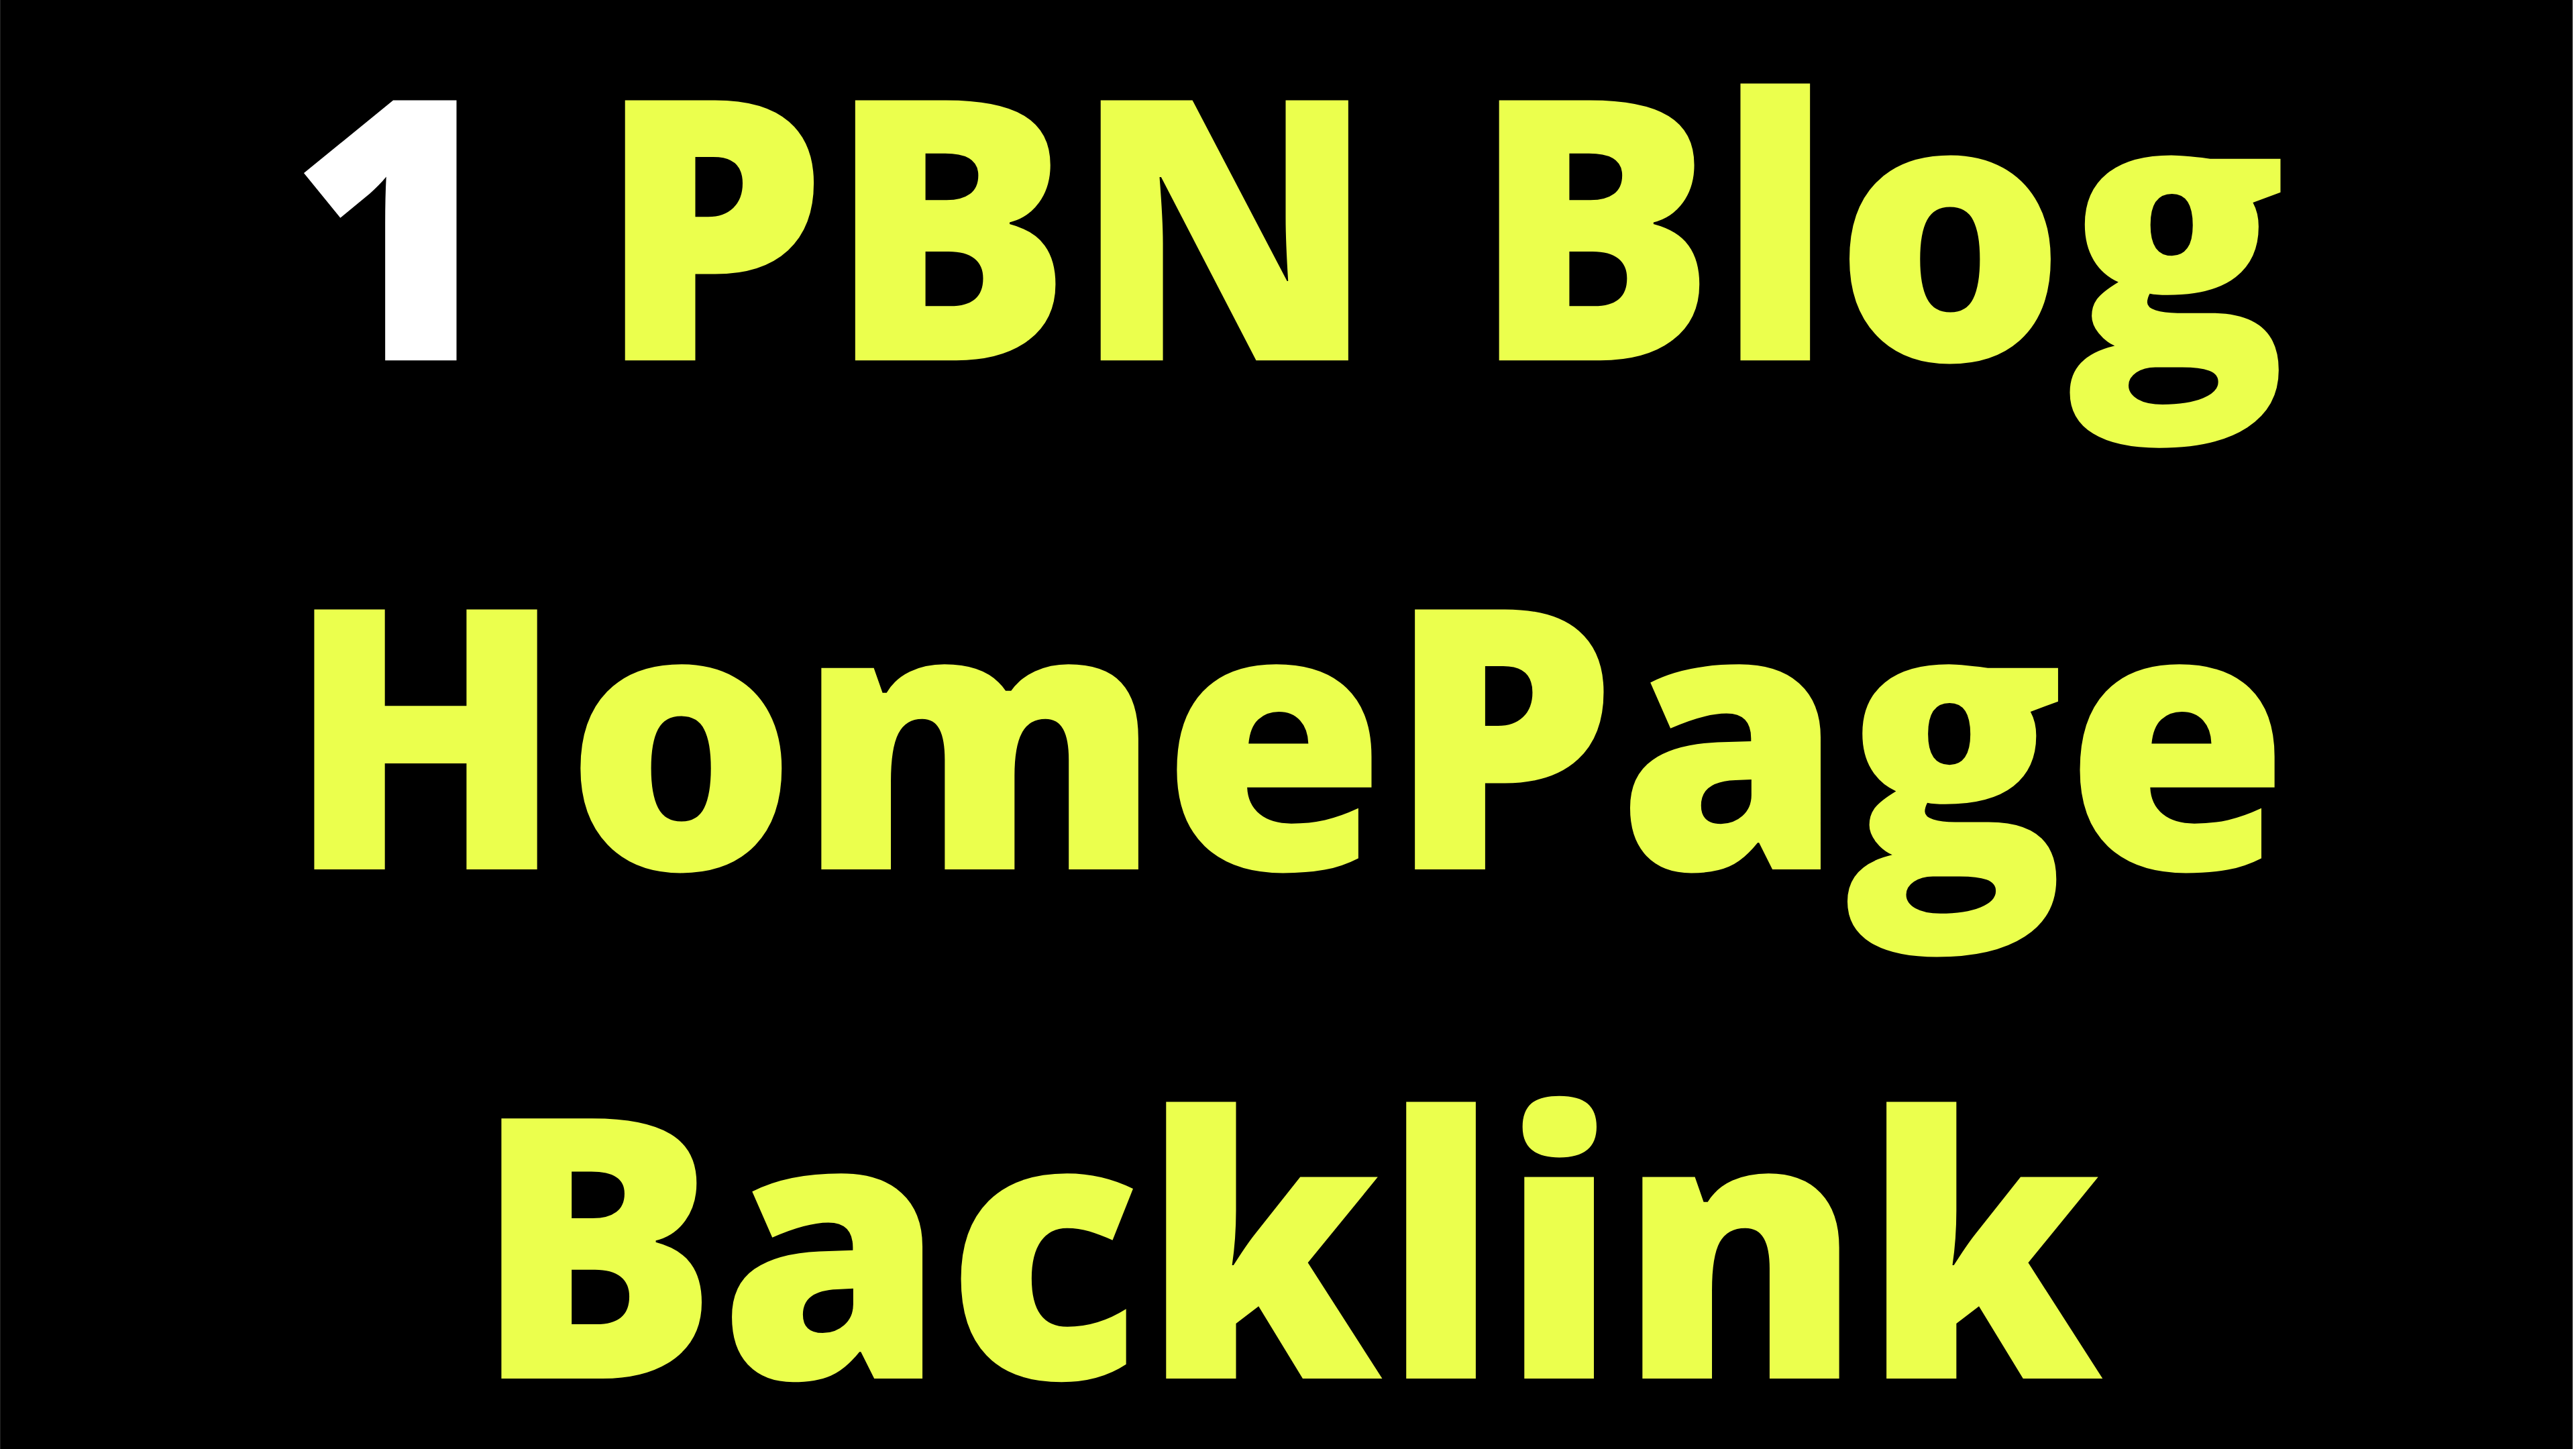 1 PBN Blog Homepage SEO Backlink Limited Time Offer Cheap Backlinks